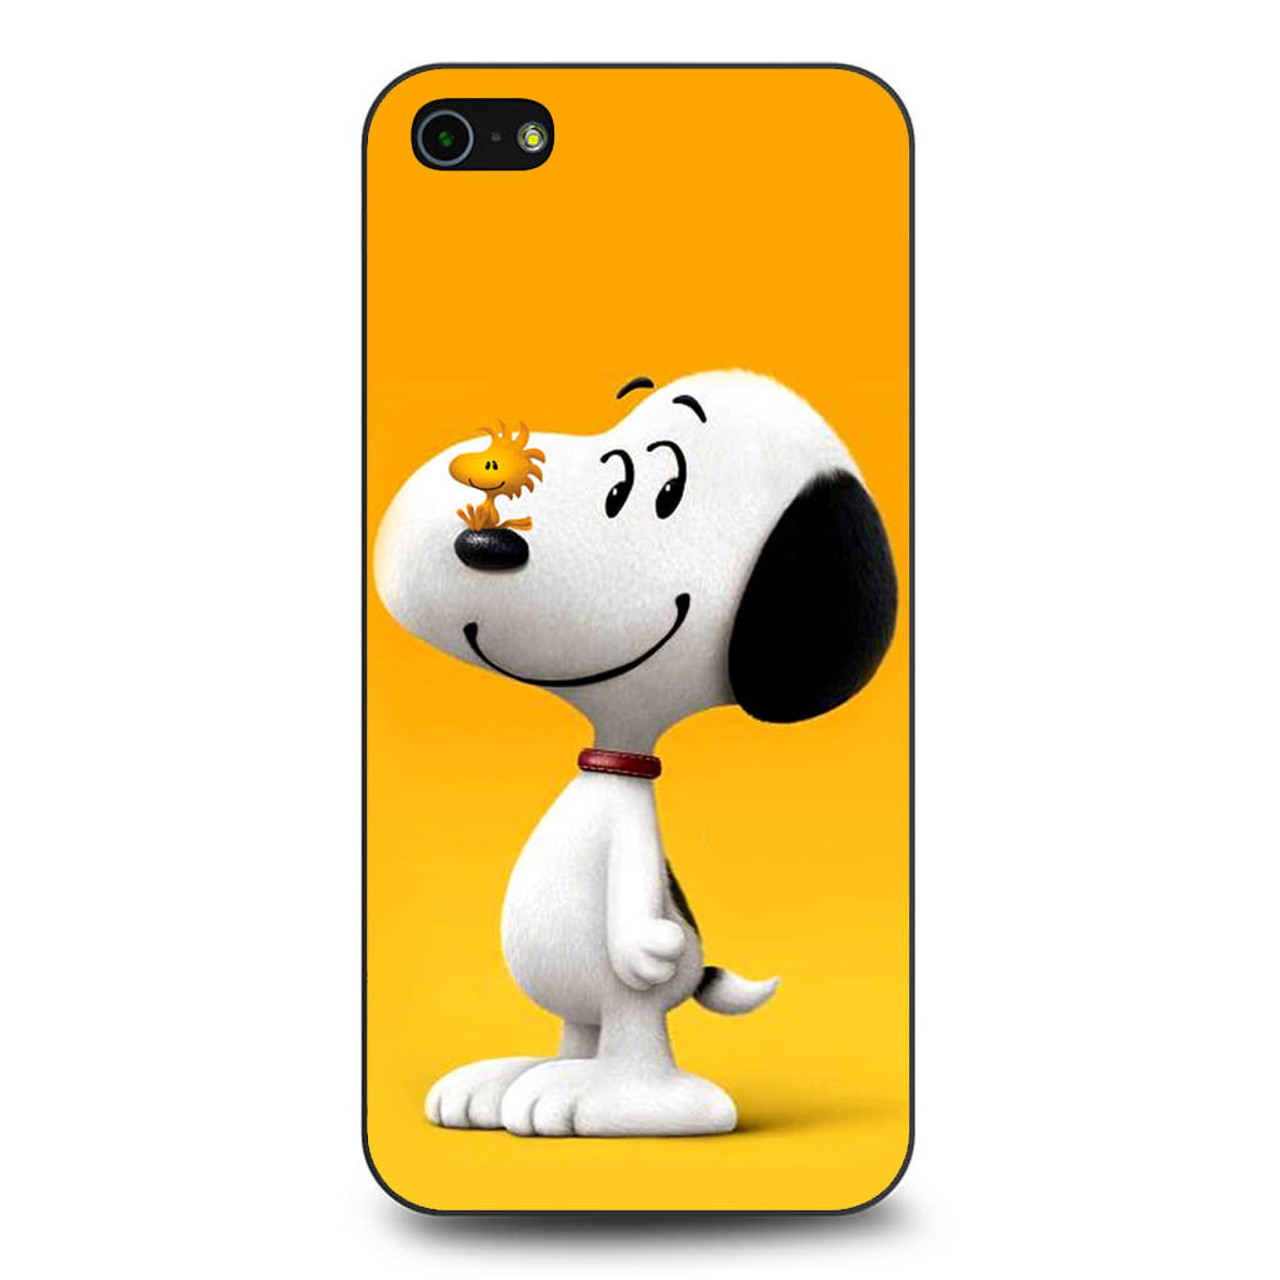 new product 9c858 dd027 Snoopy iPhone 5/5S/SE Case